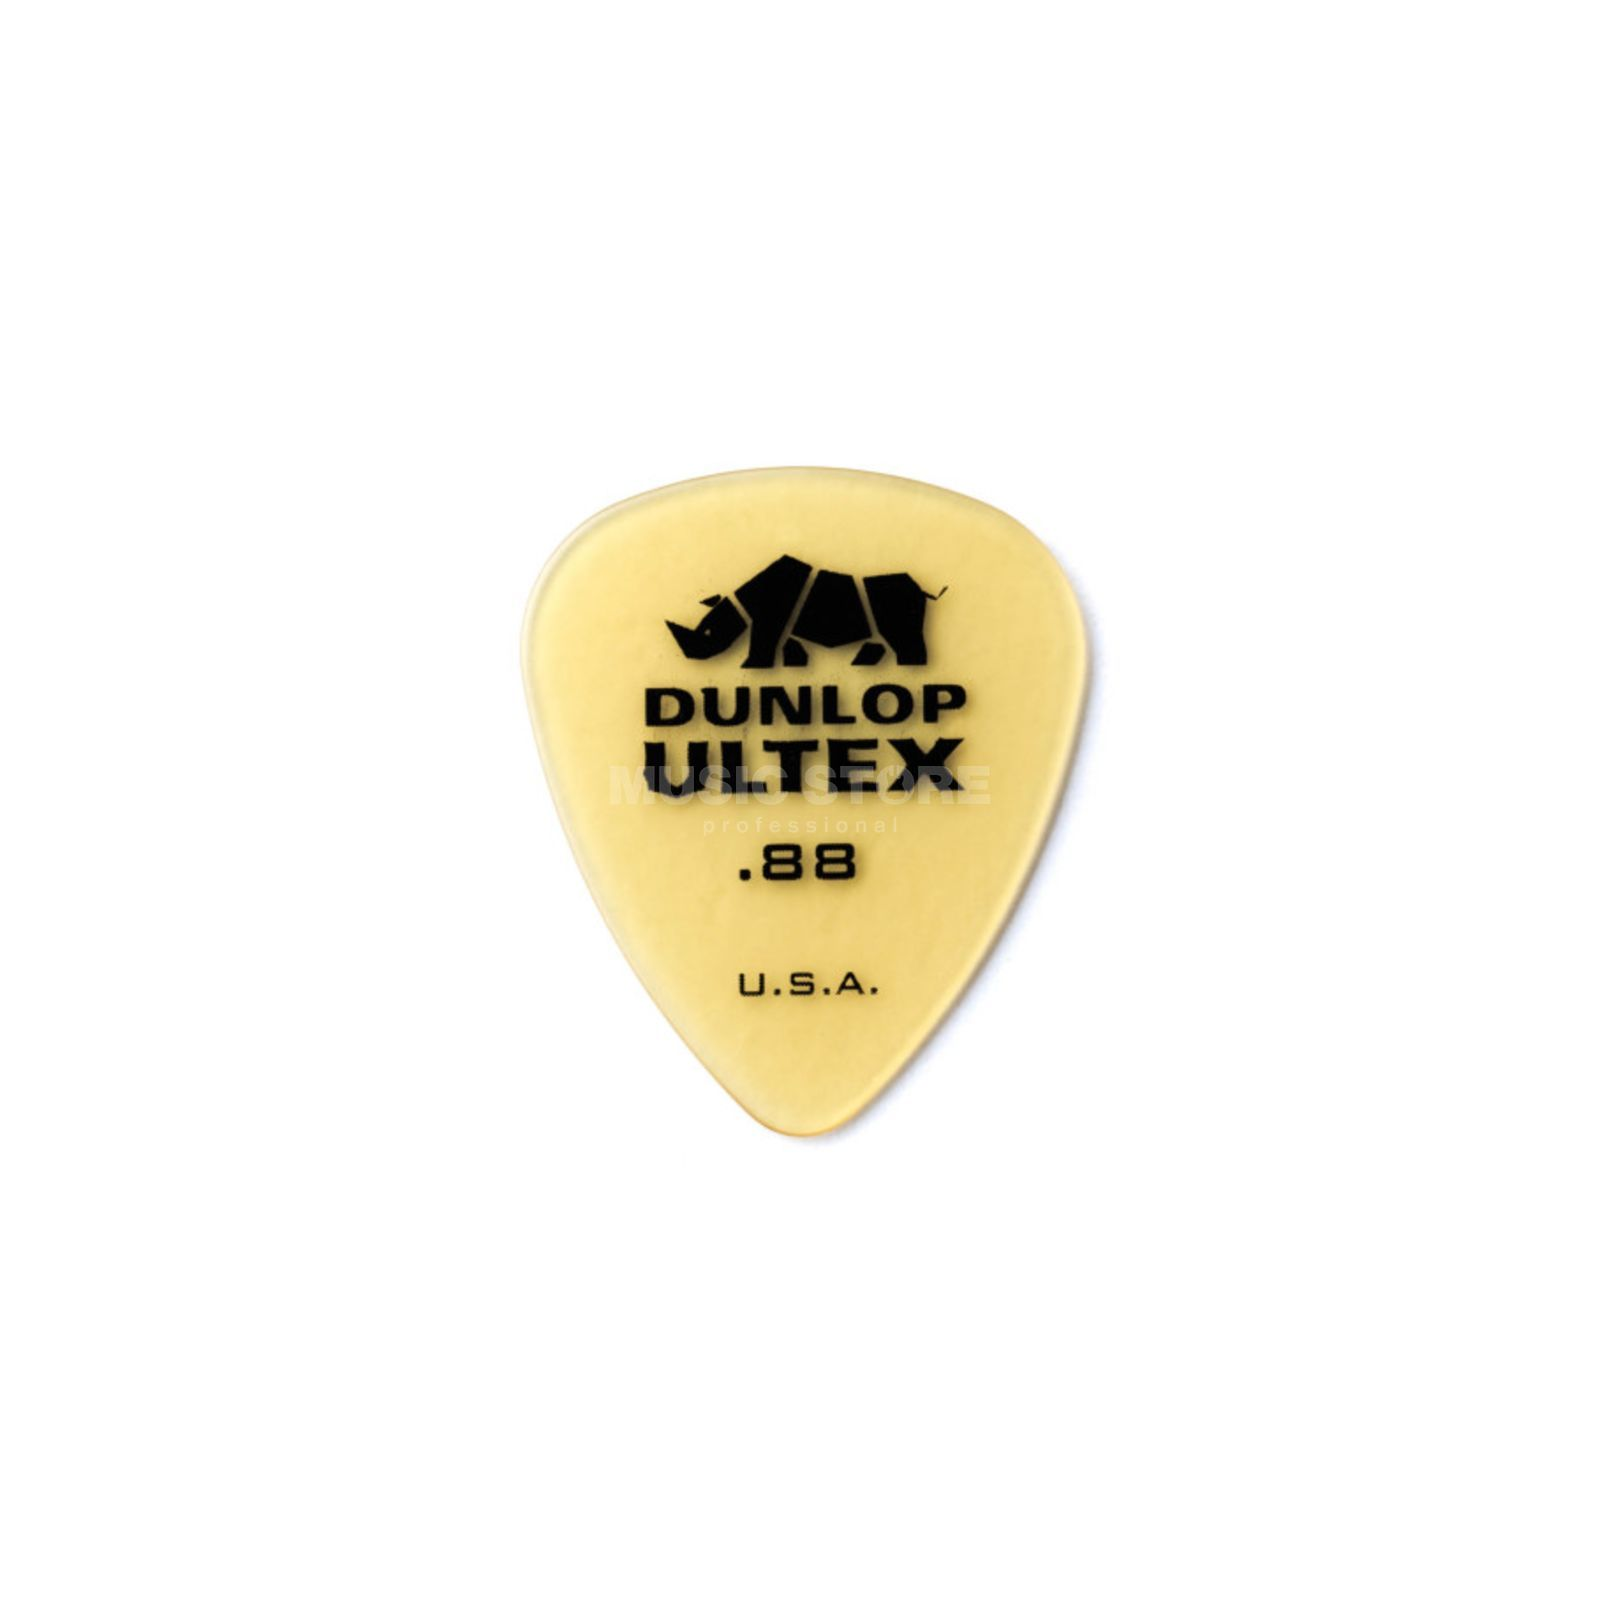 Dunlop Ultex Pickset 0,88 mm 6er-Set Image du produit